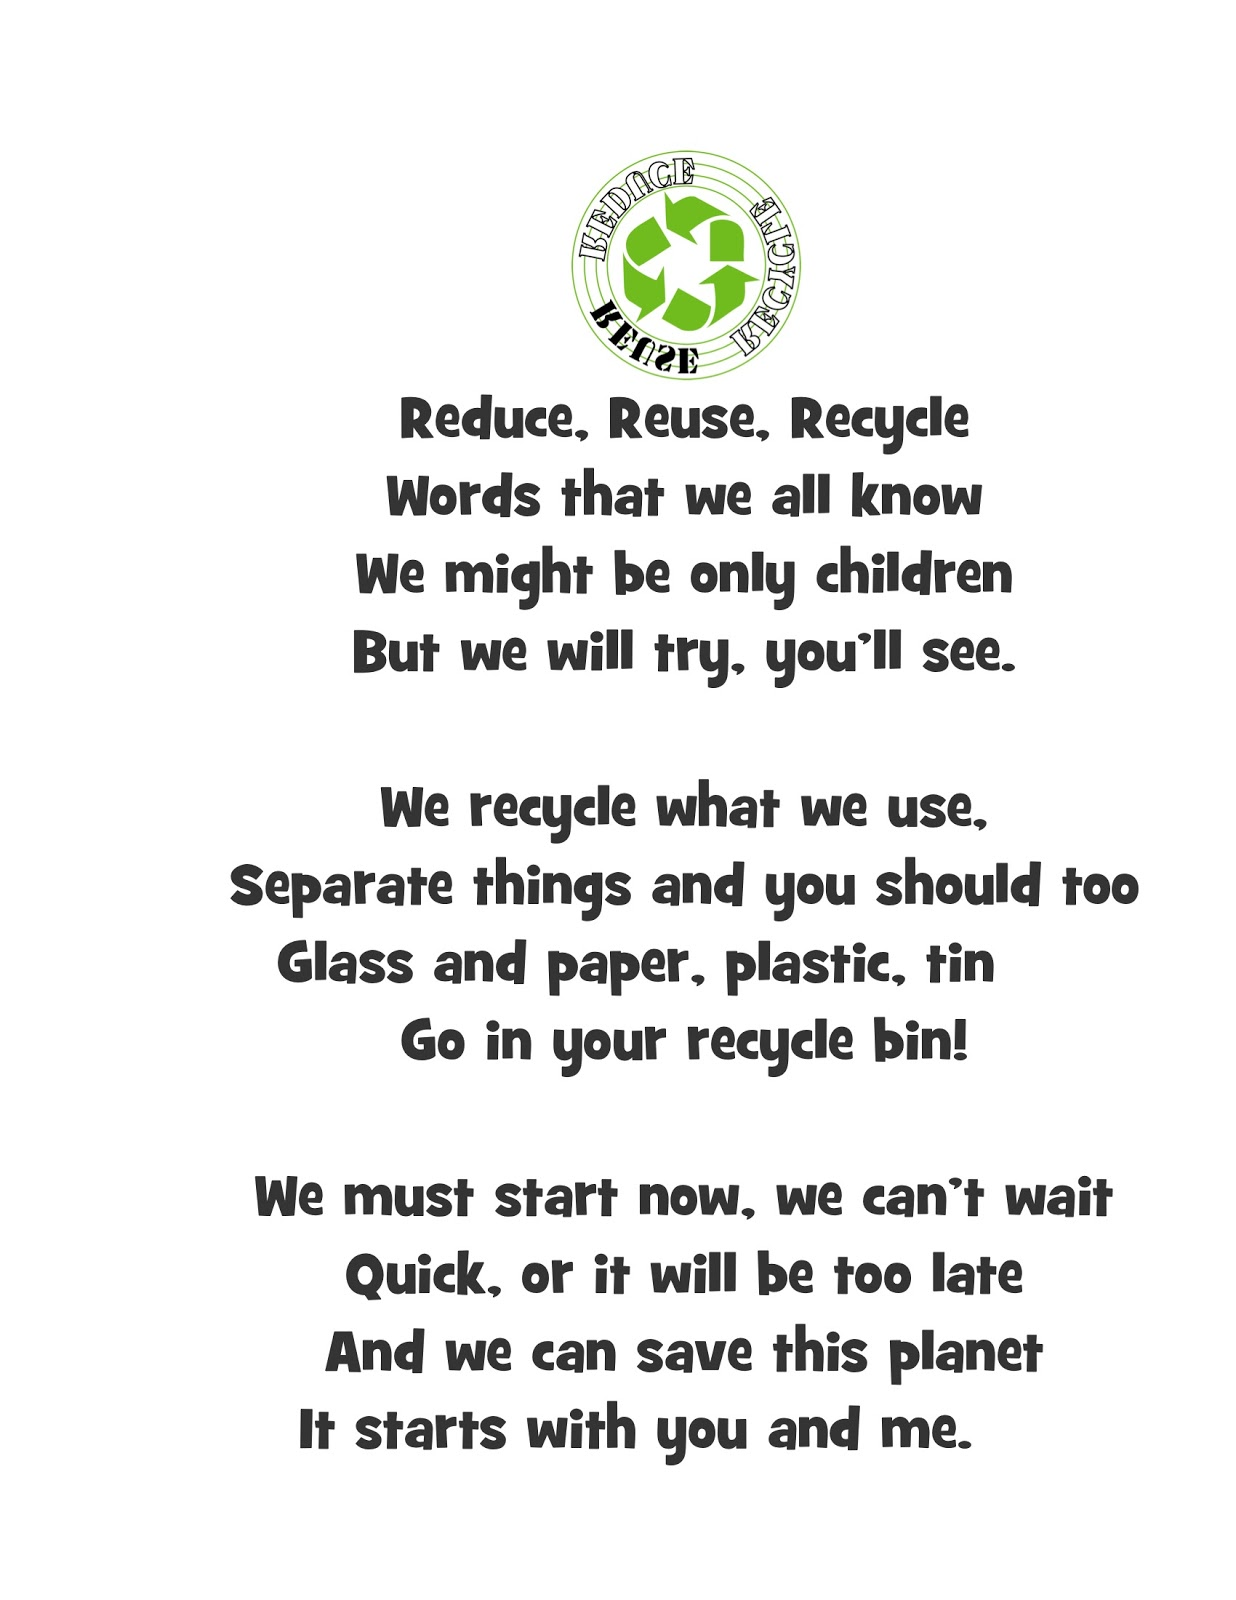 reduce reuse recycle poem q u o t e u s pinterest reduce